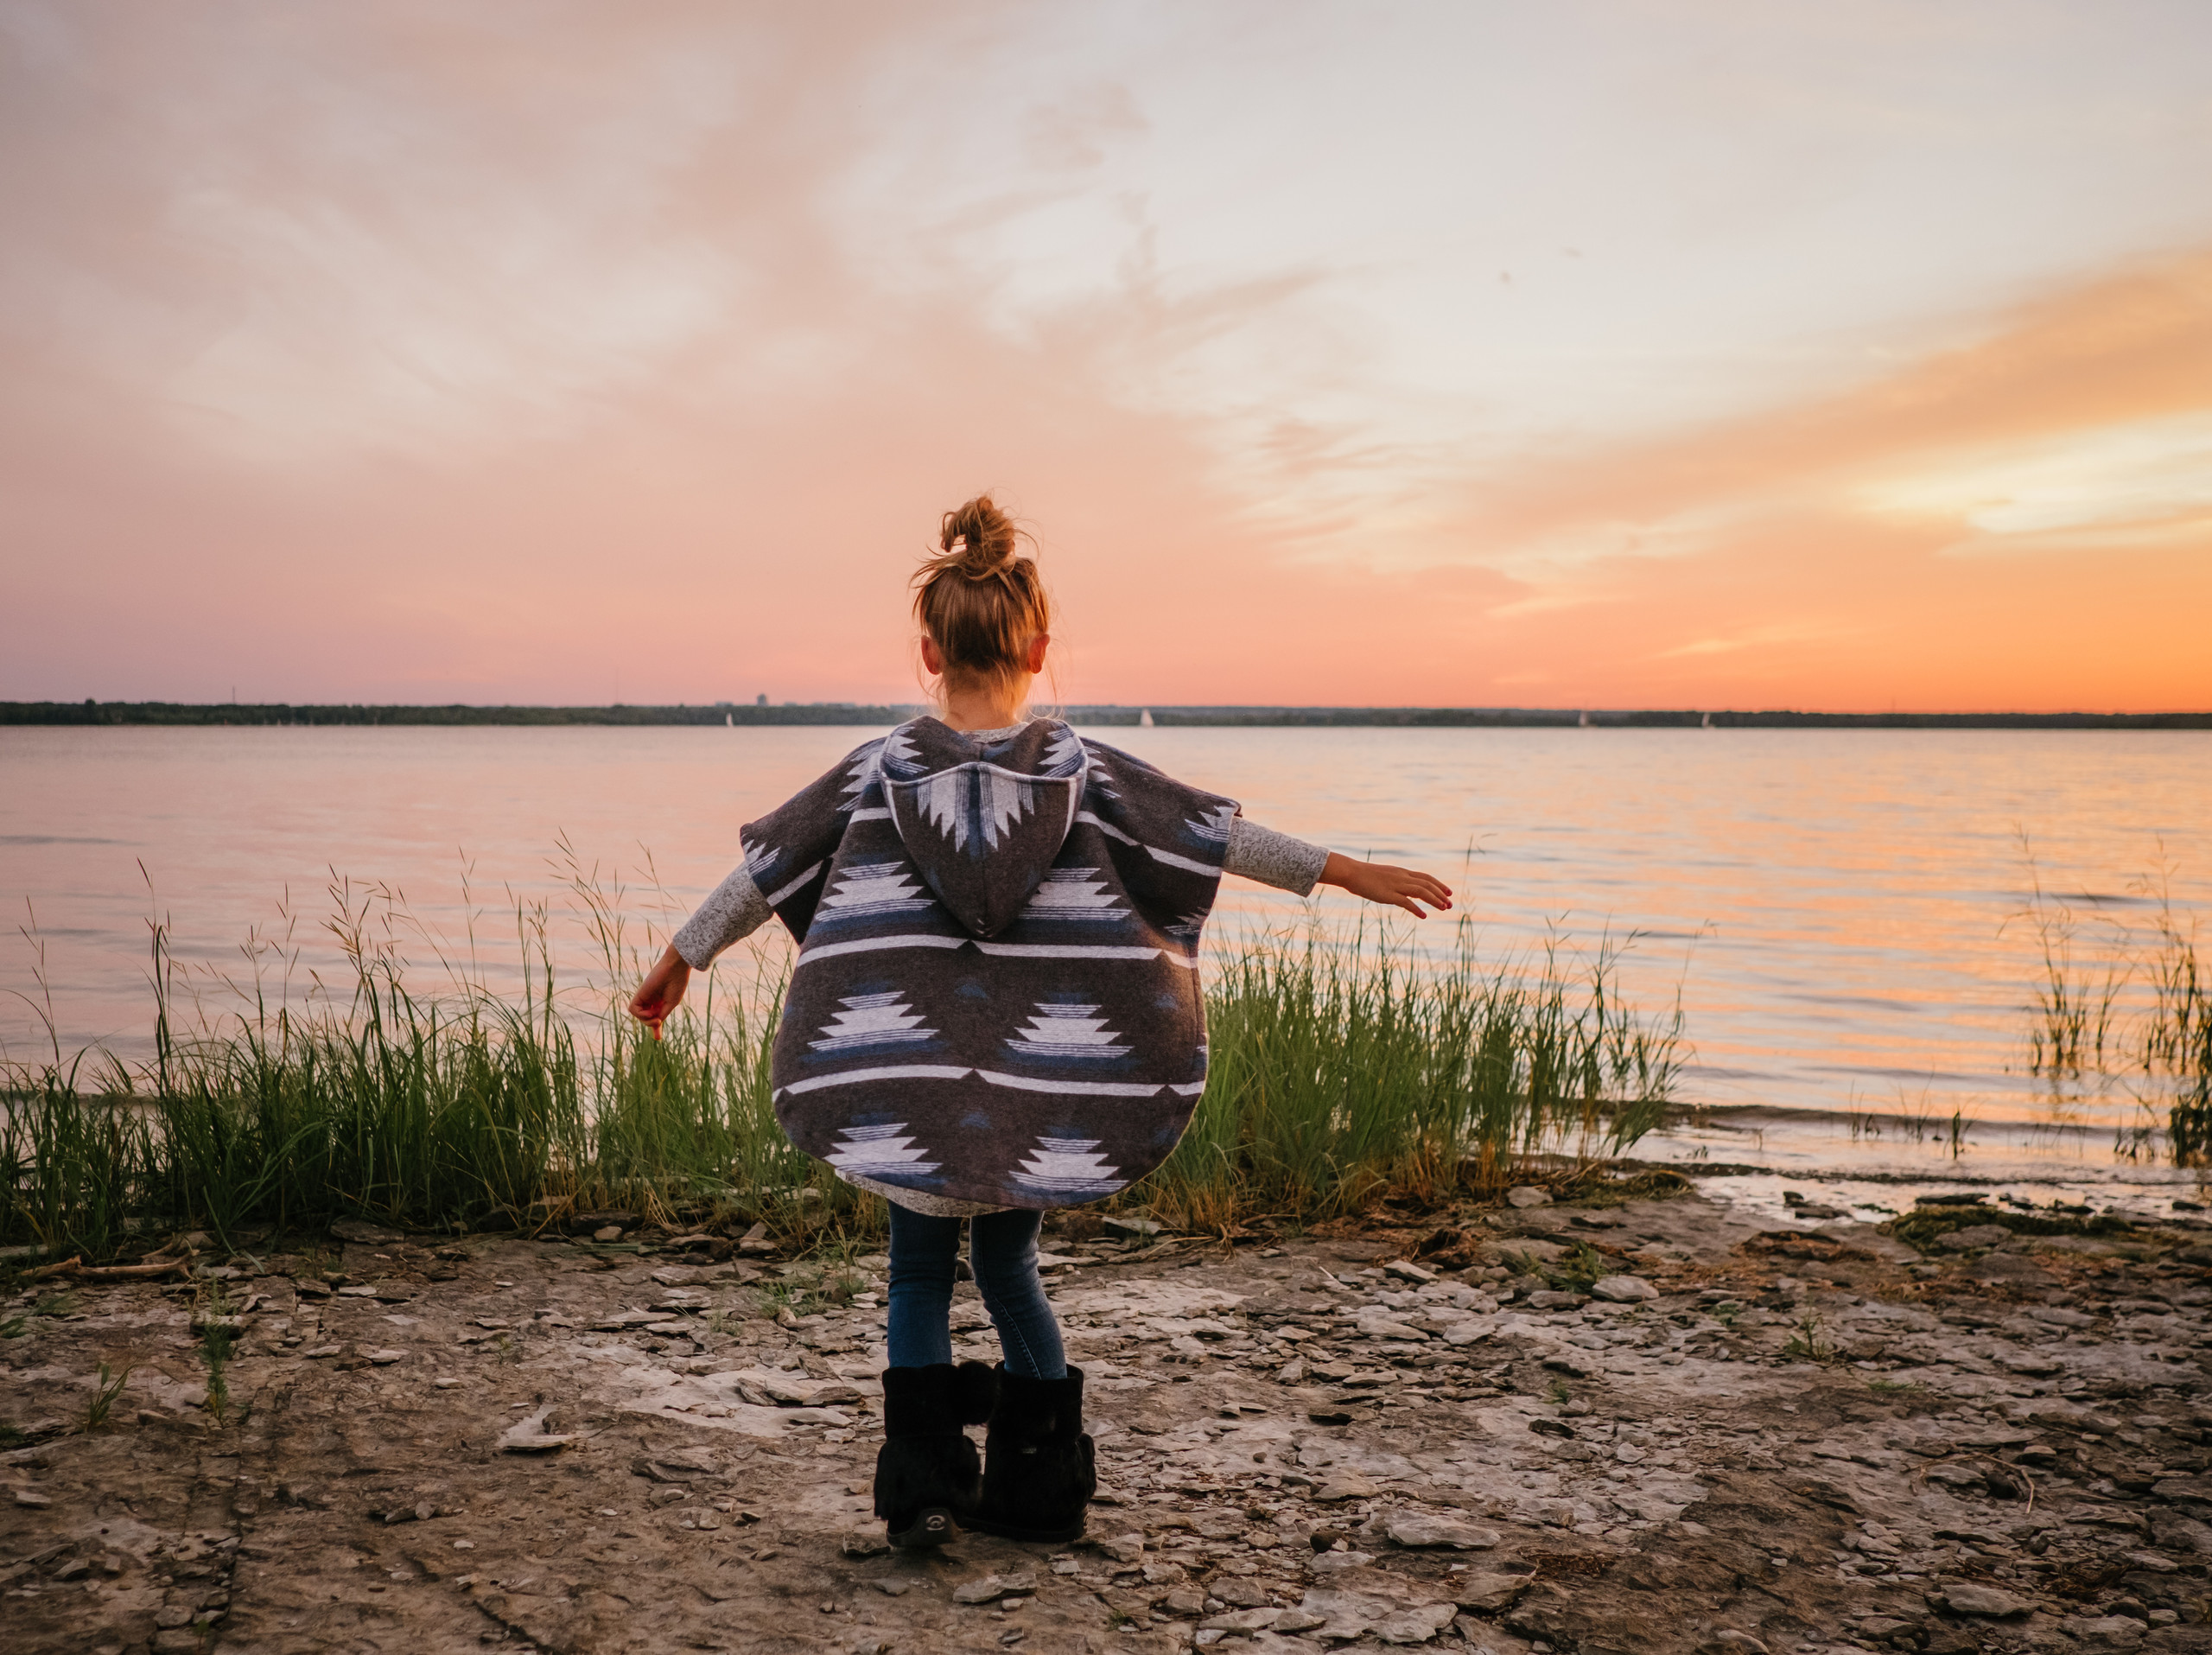 Ottawa Gatineau lifestyle, branding and family photographer captures girl in Mini Tipi poncho during branding photo session in Aylmer QC. Melanie is a local photographer creating imagery for small businesses.